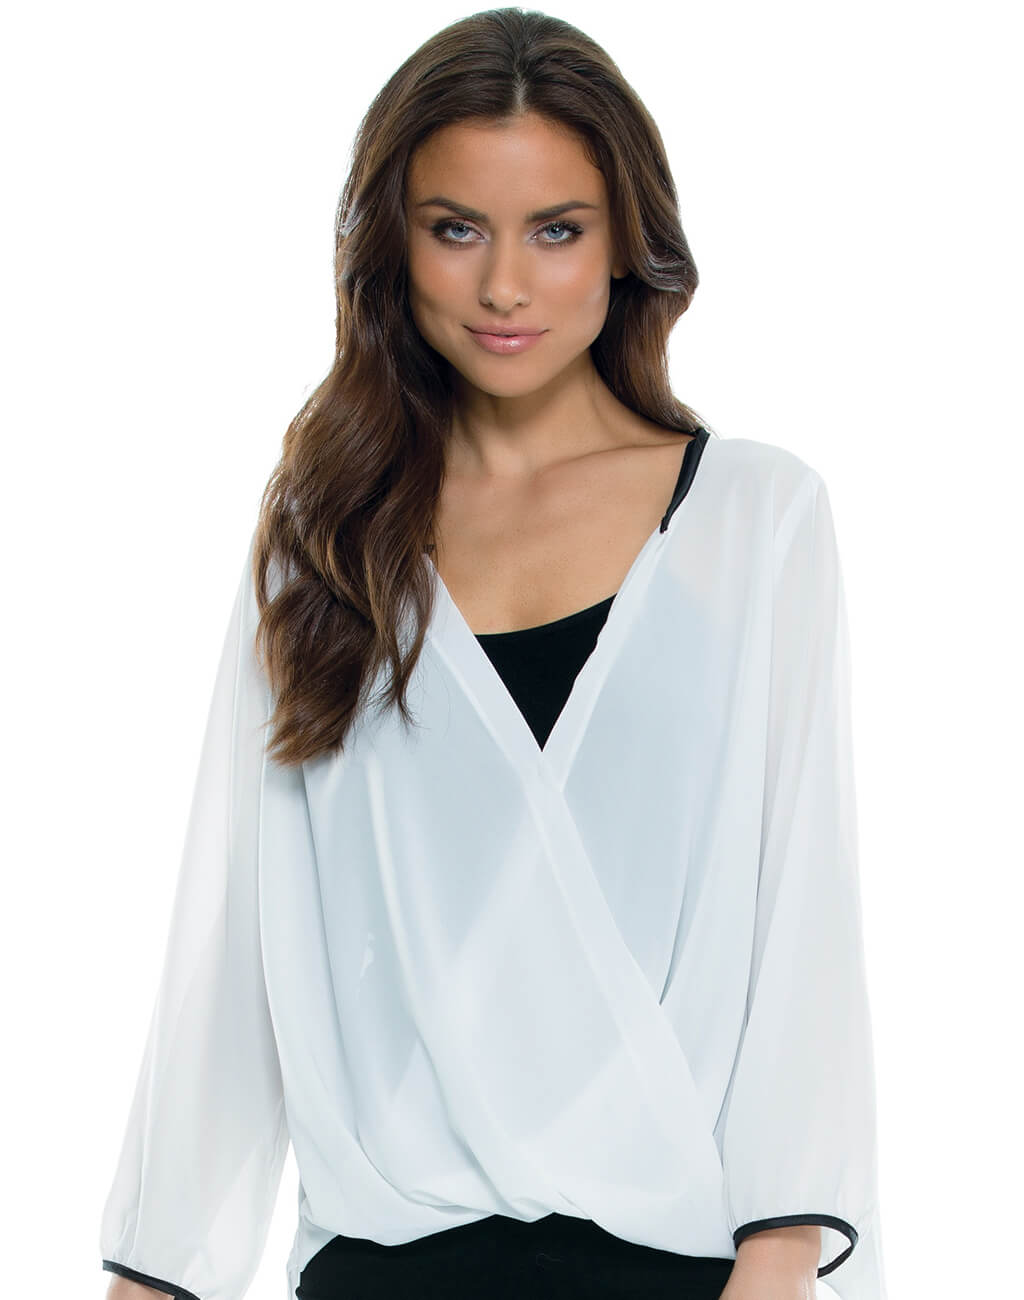 Ladies : Long Sleave White Top